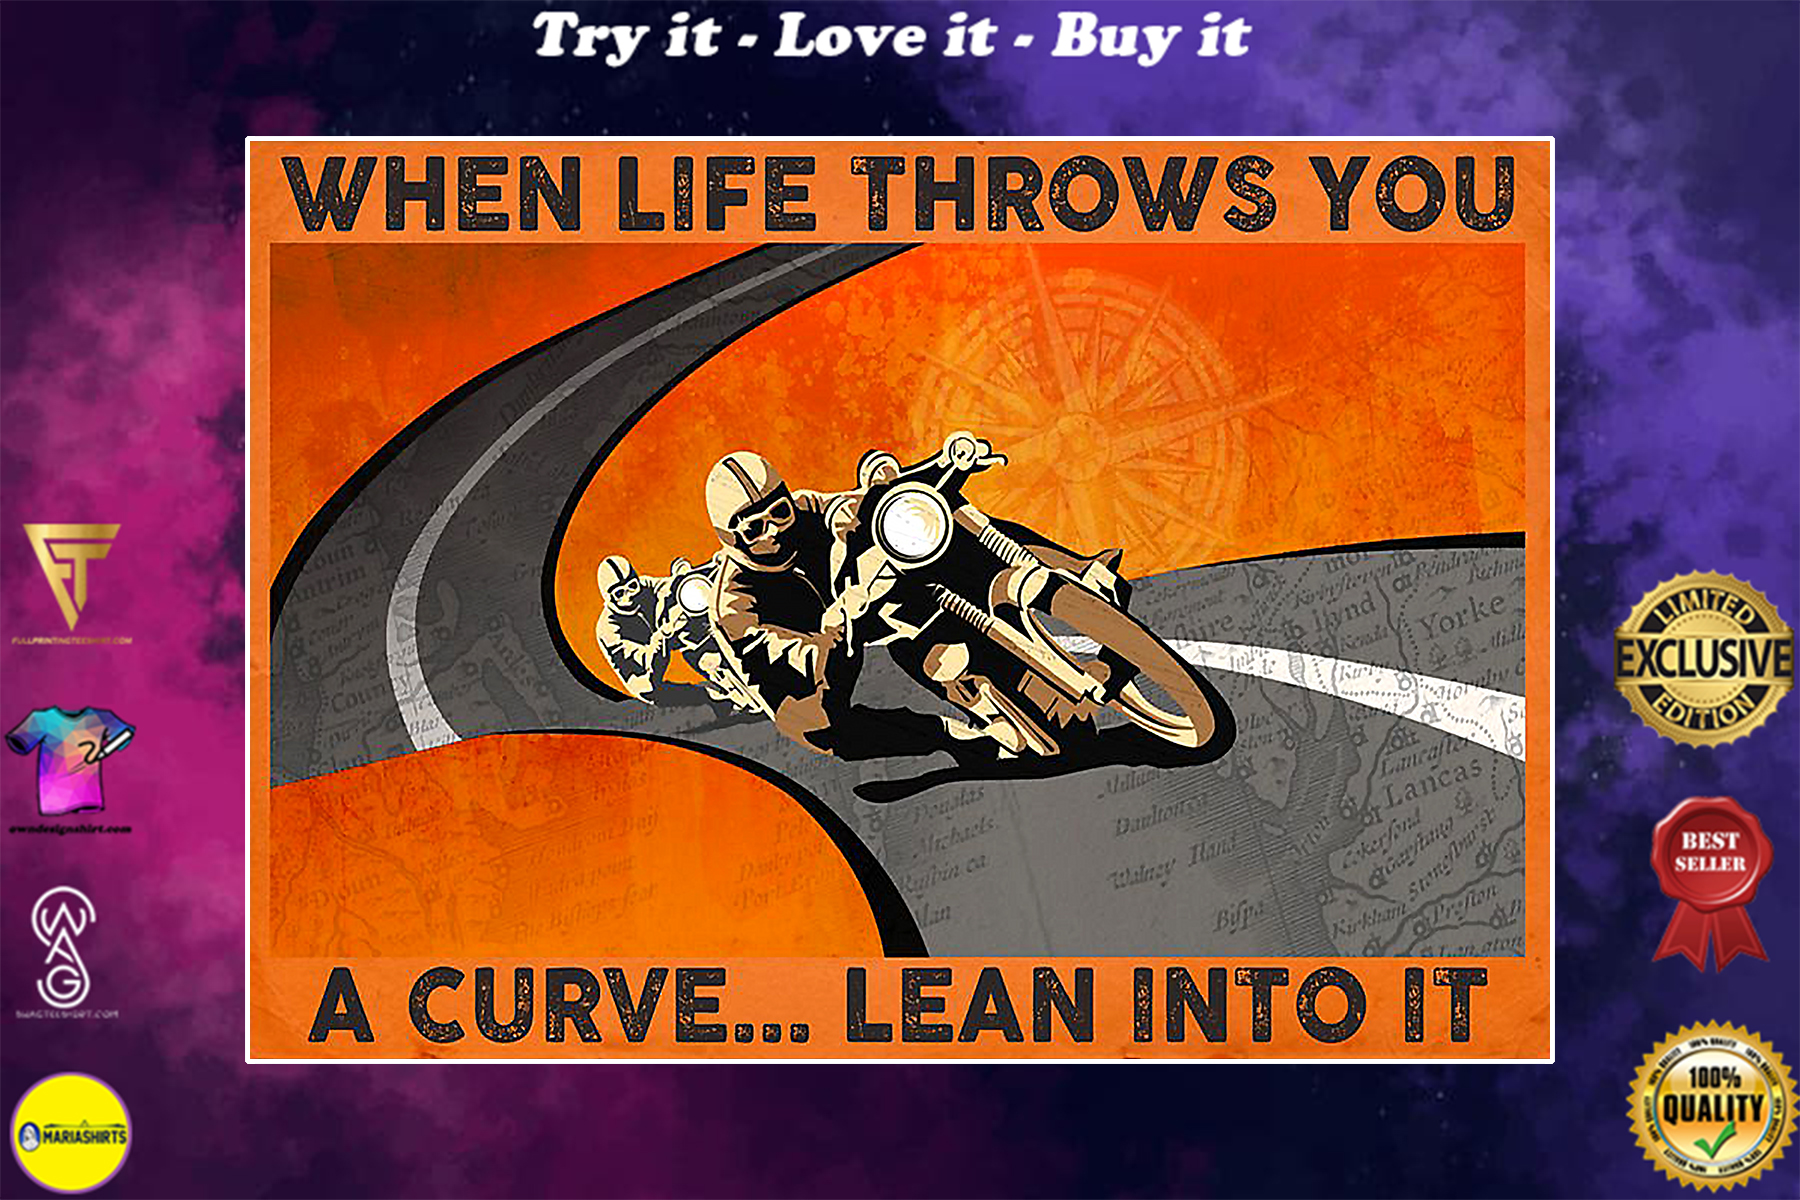 when life throws you a curve lean into it vintage poster